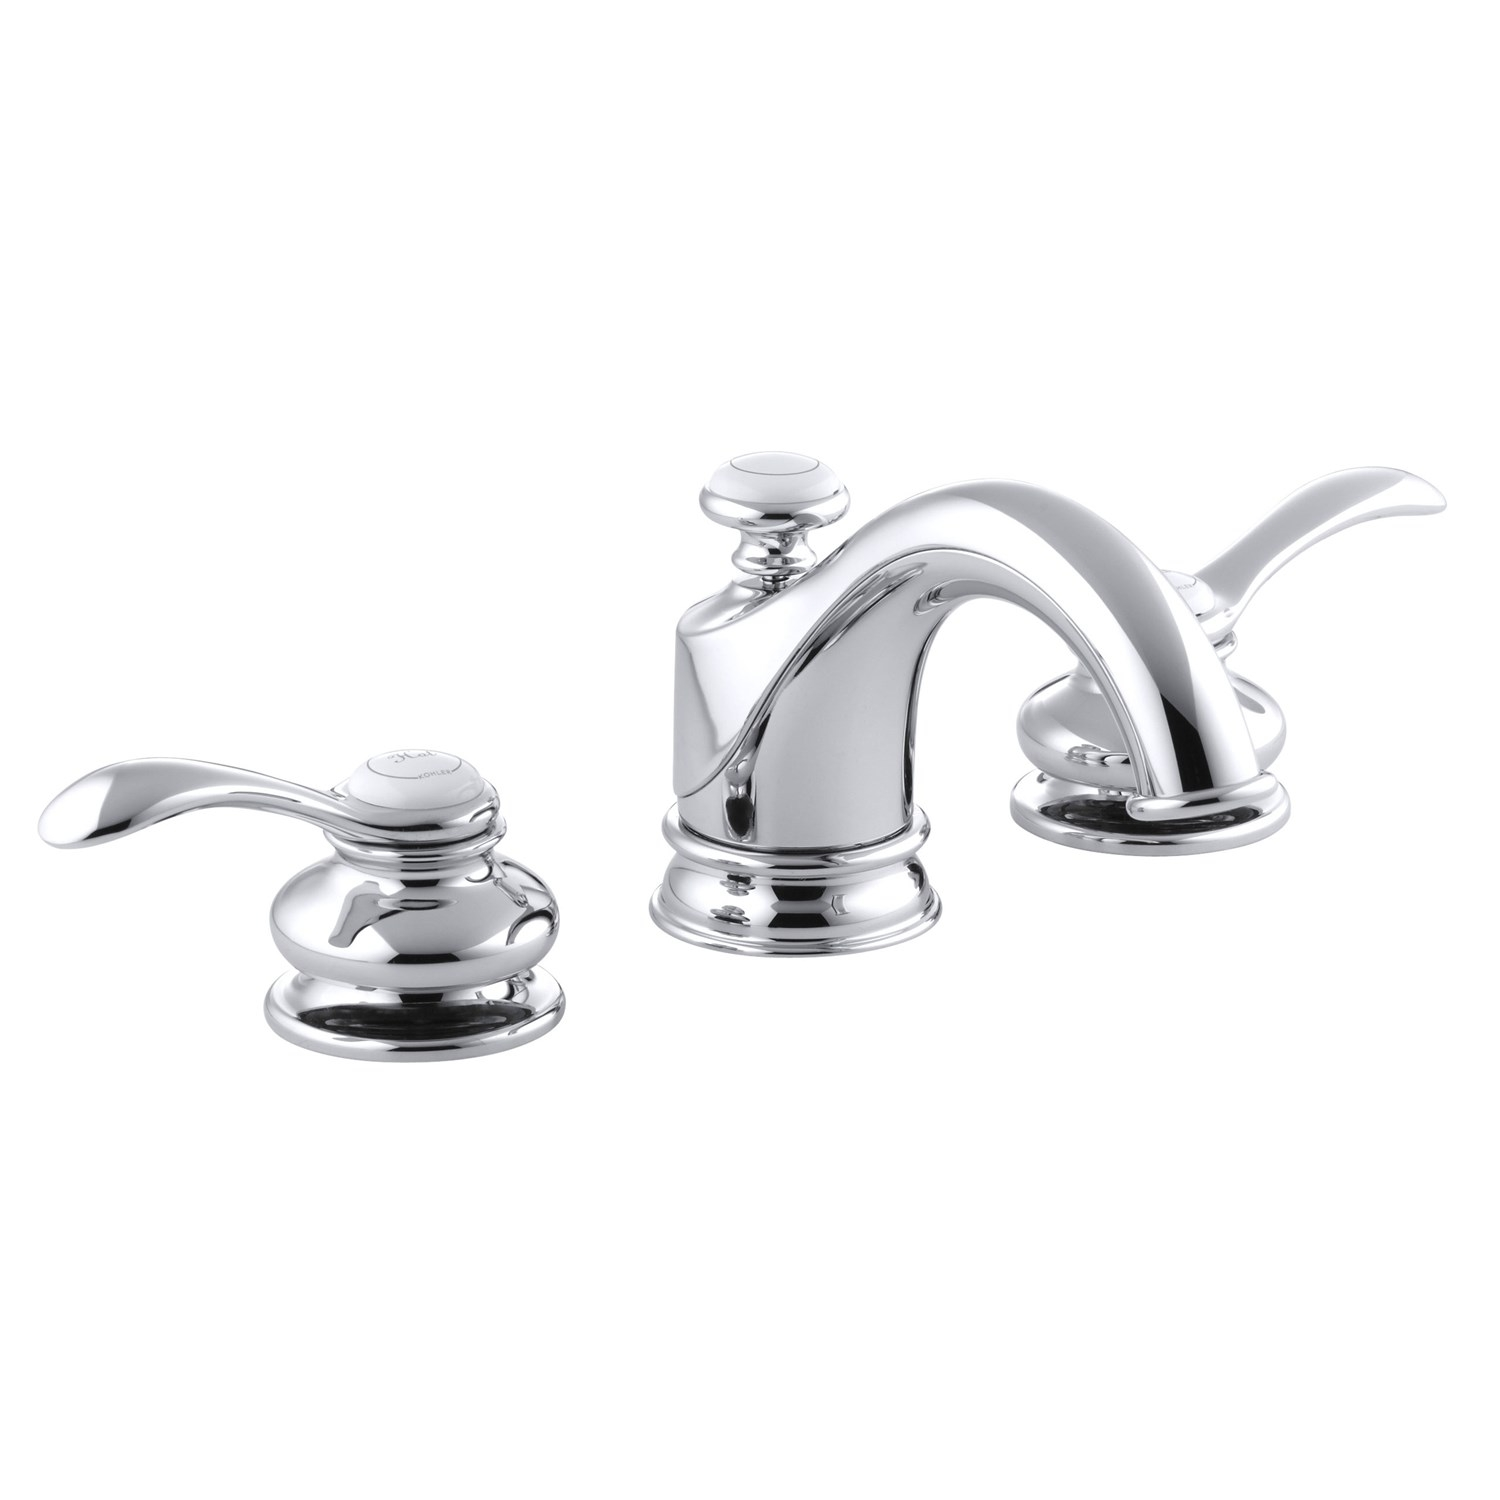 Ideas, kohler brushed bronze bathroom faucets kohler brushed bronze bathroom faucets top rated bathroom faucets homeclick 1500 x 1500  .